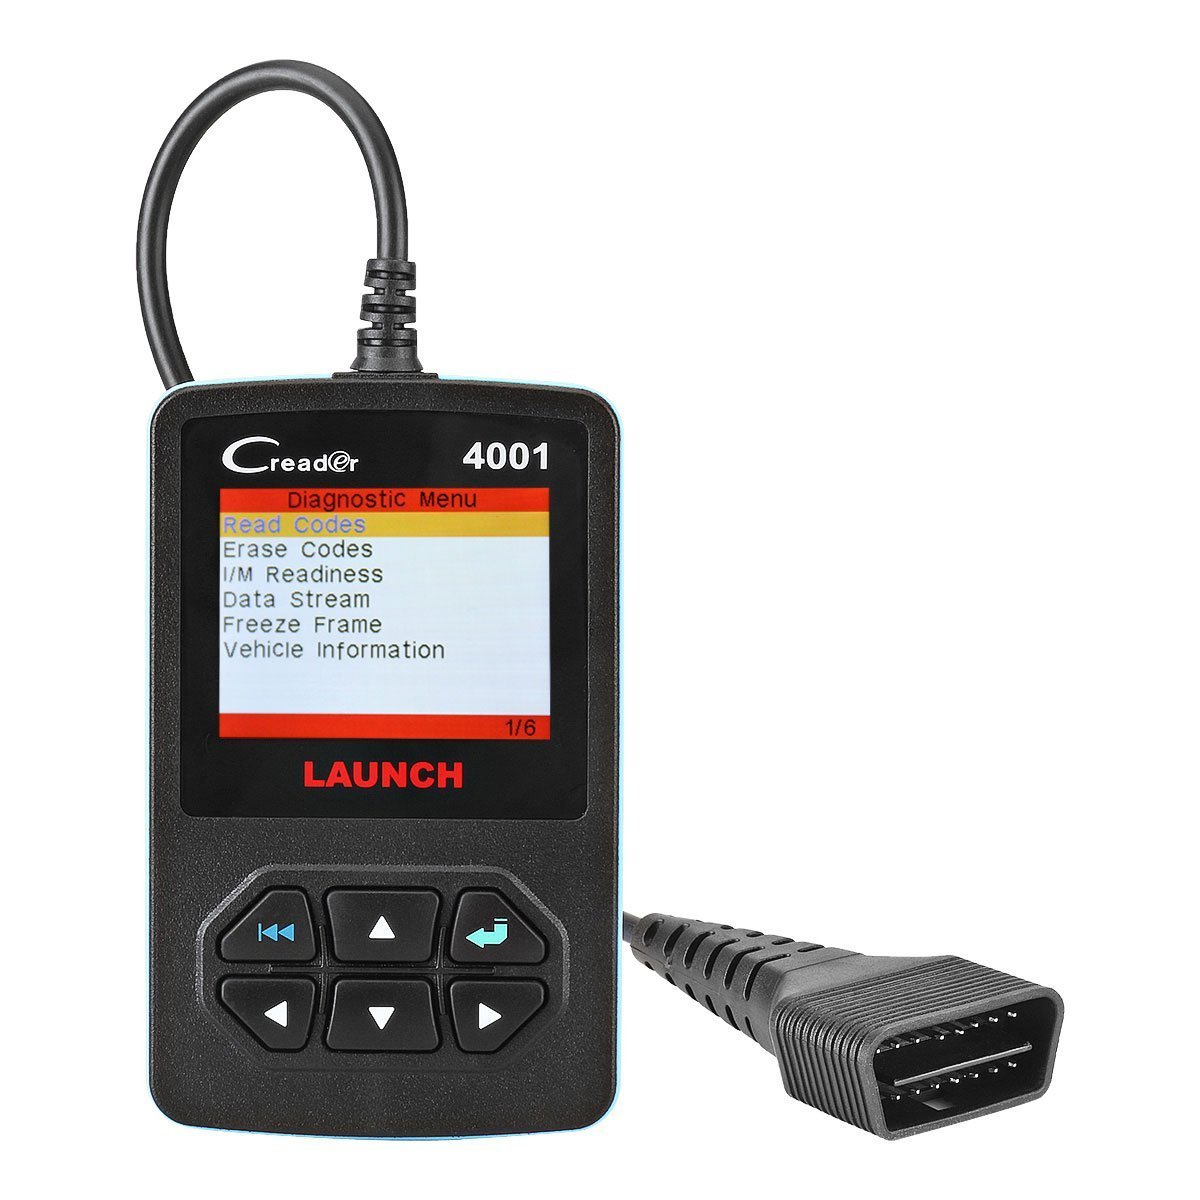 LAUNCH Creader 4001 OBD2 Scanner Diagnostic Scan Tool Car Code Reader for Turning Off Check Engine Light Reads and Clears Engine Fault Codes